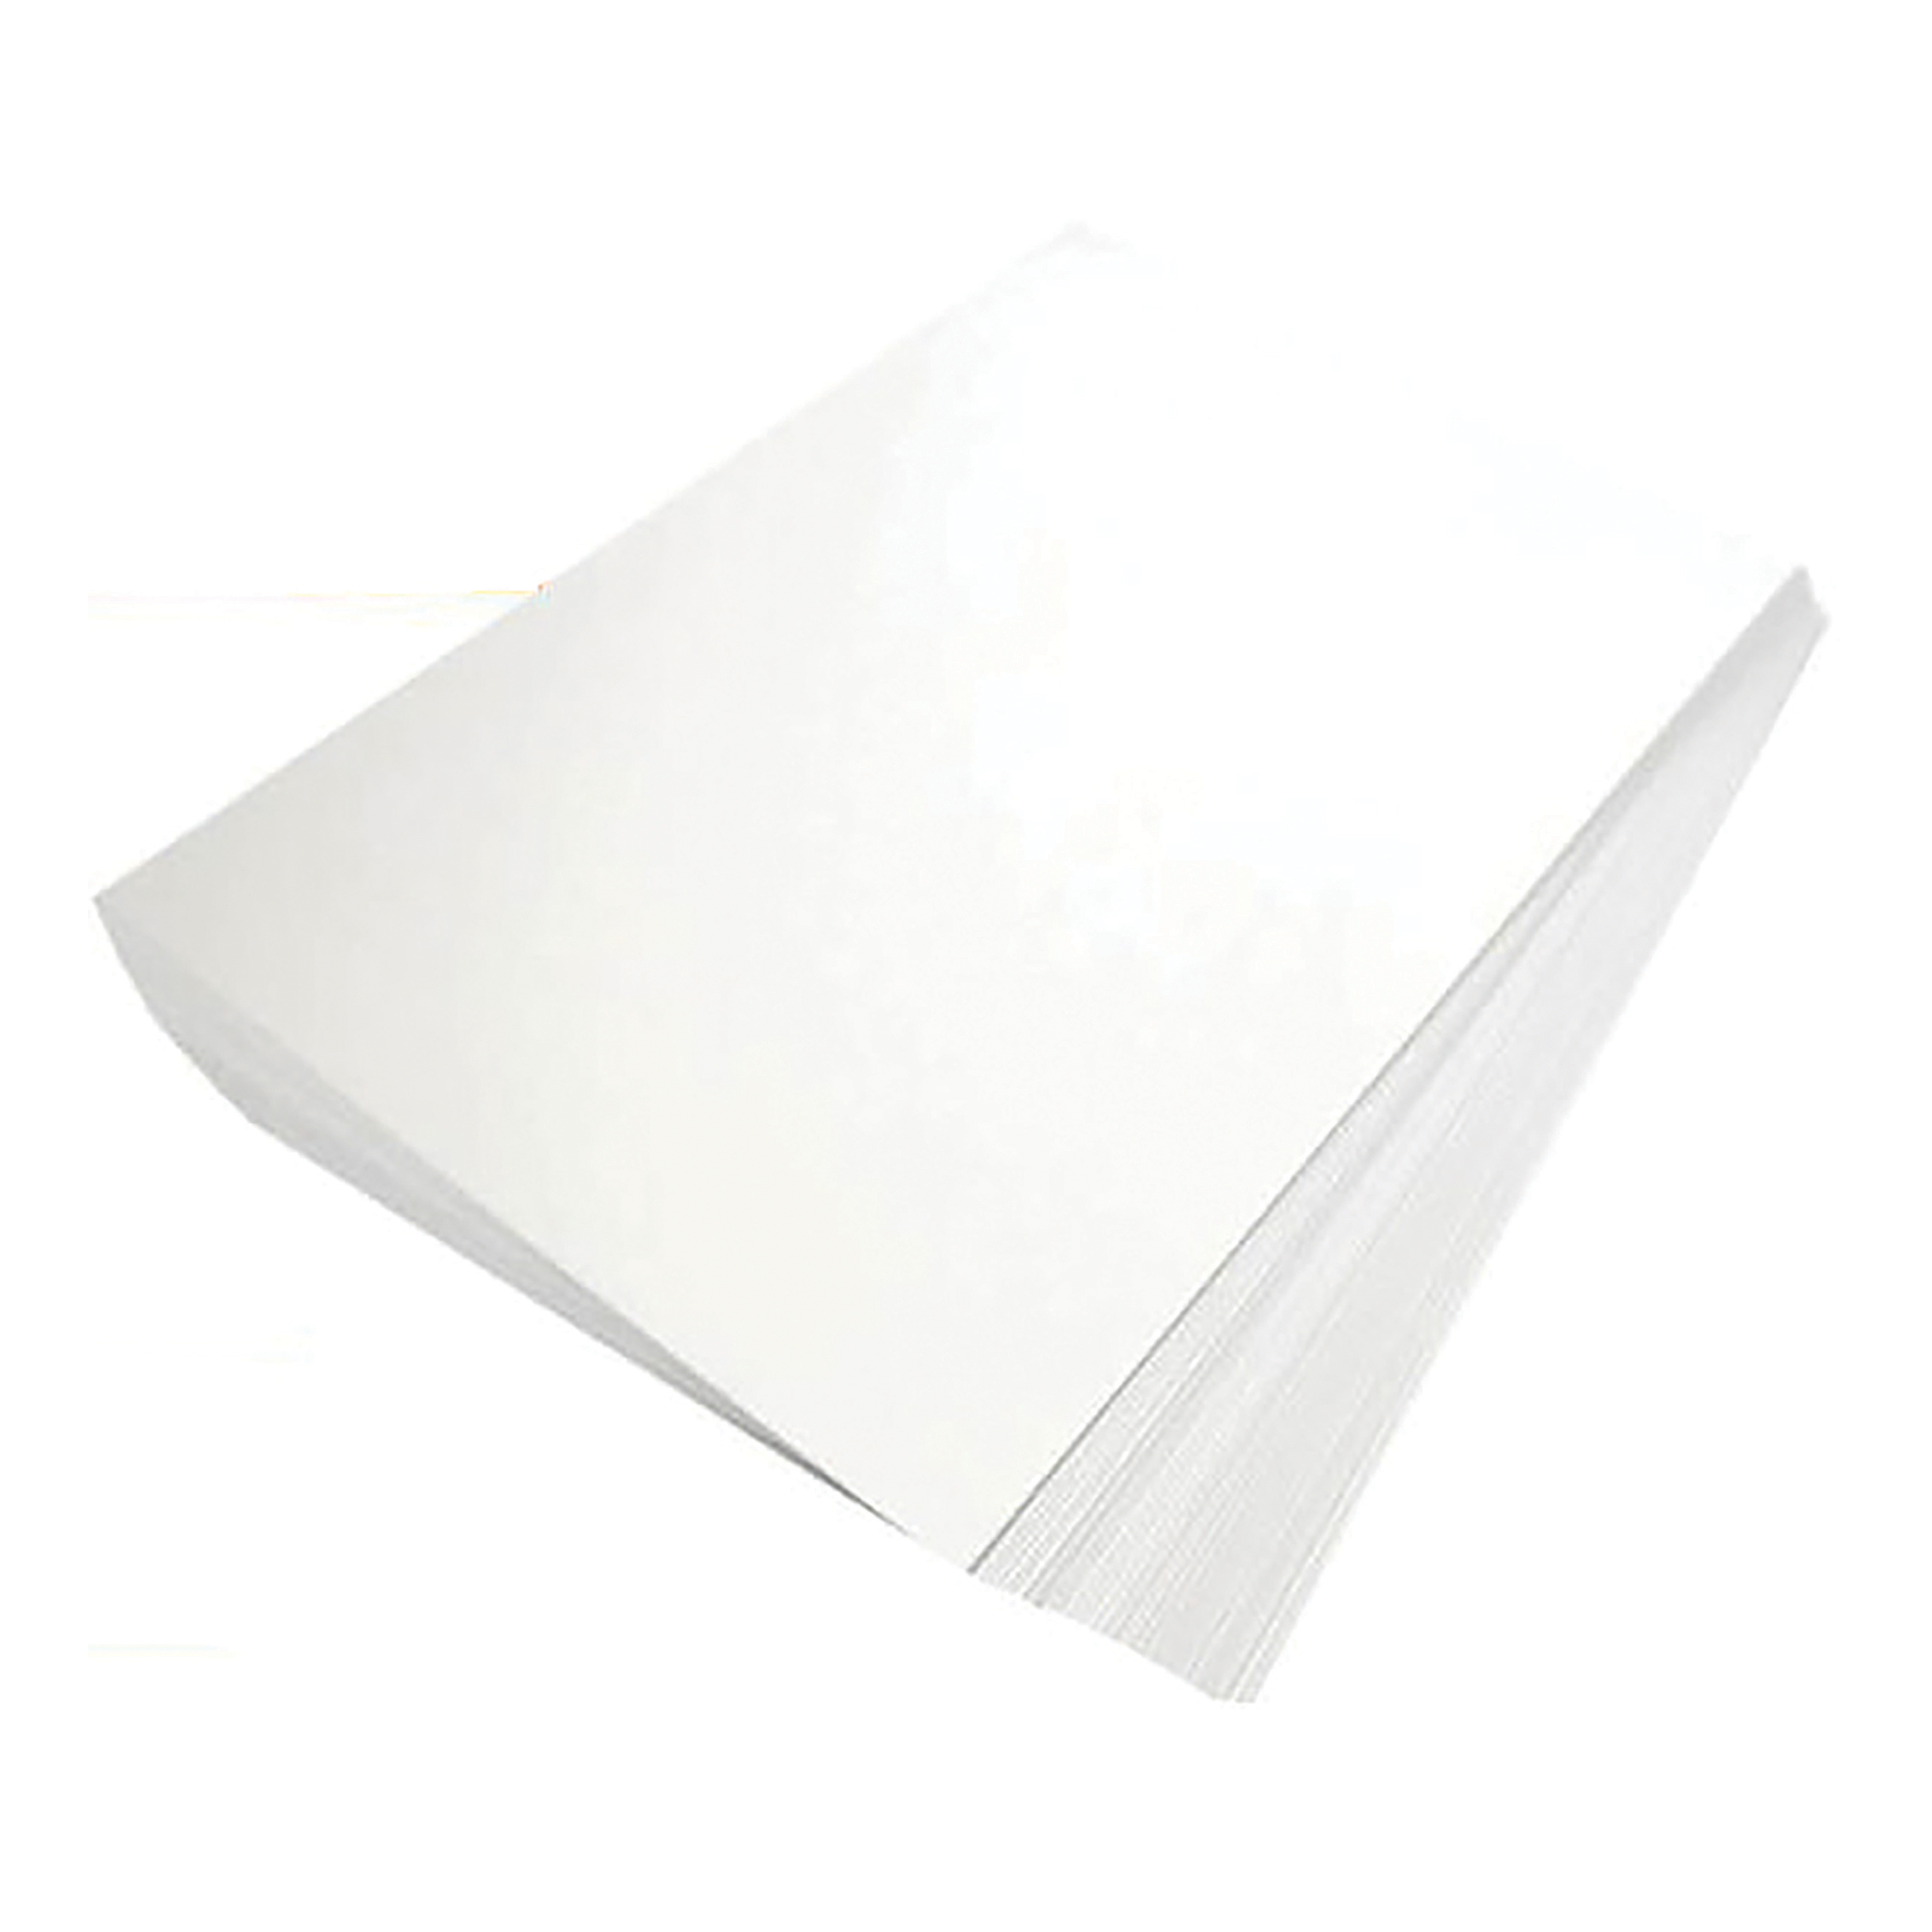 5 Star Elite Premium Business Paper Wove Finish Ream-Wrapped 100gsm A4 Vellum [500 Sheets]